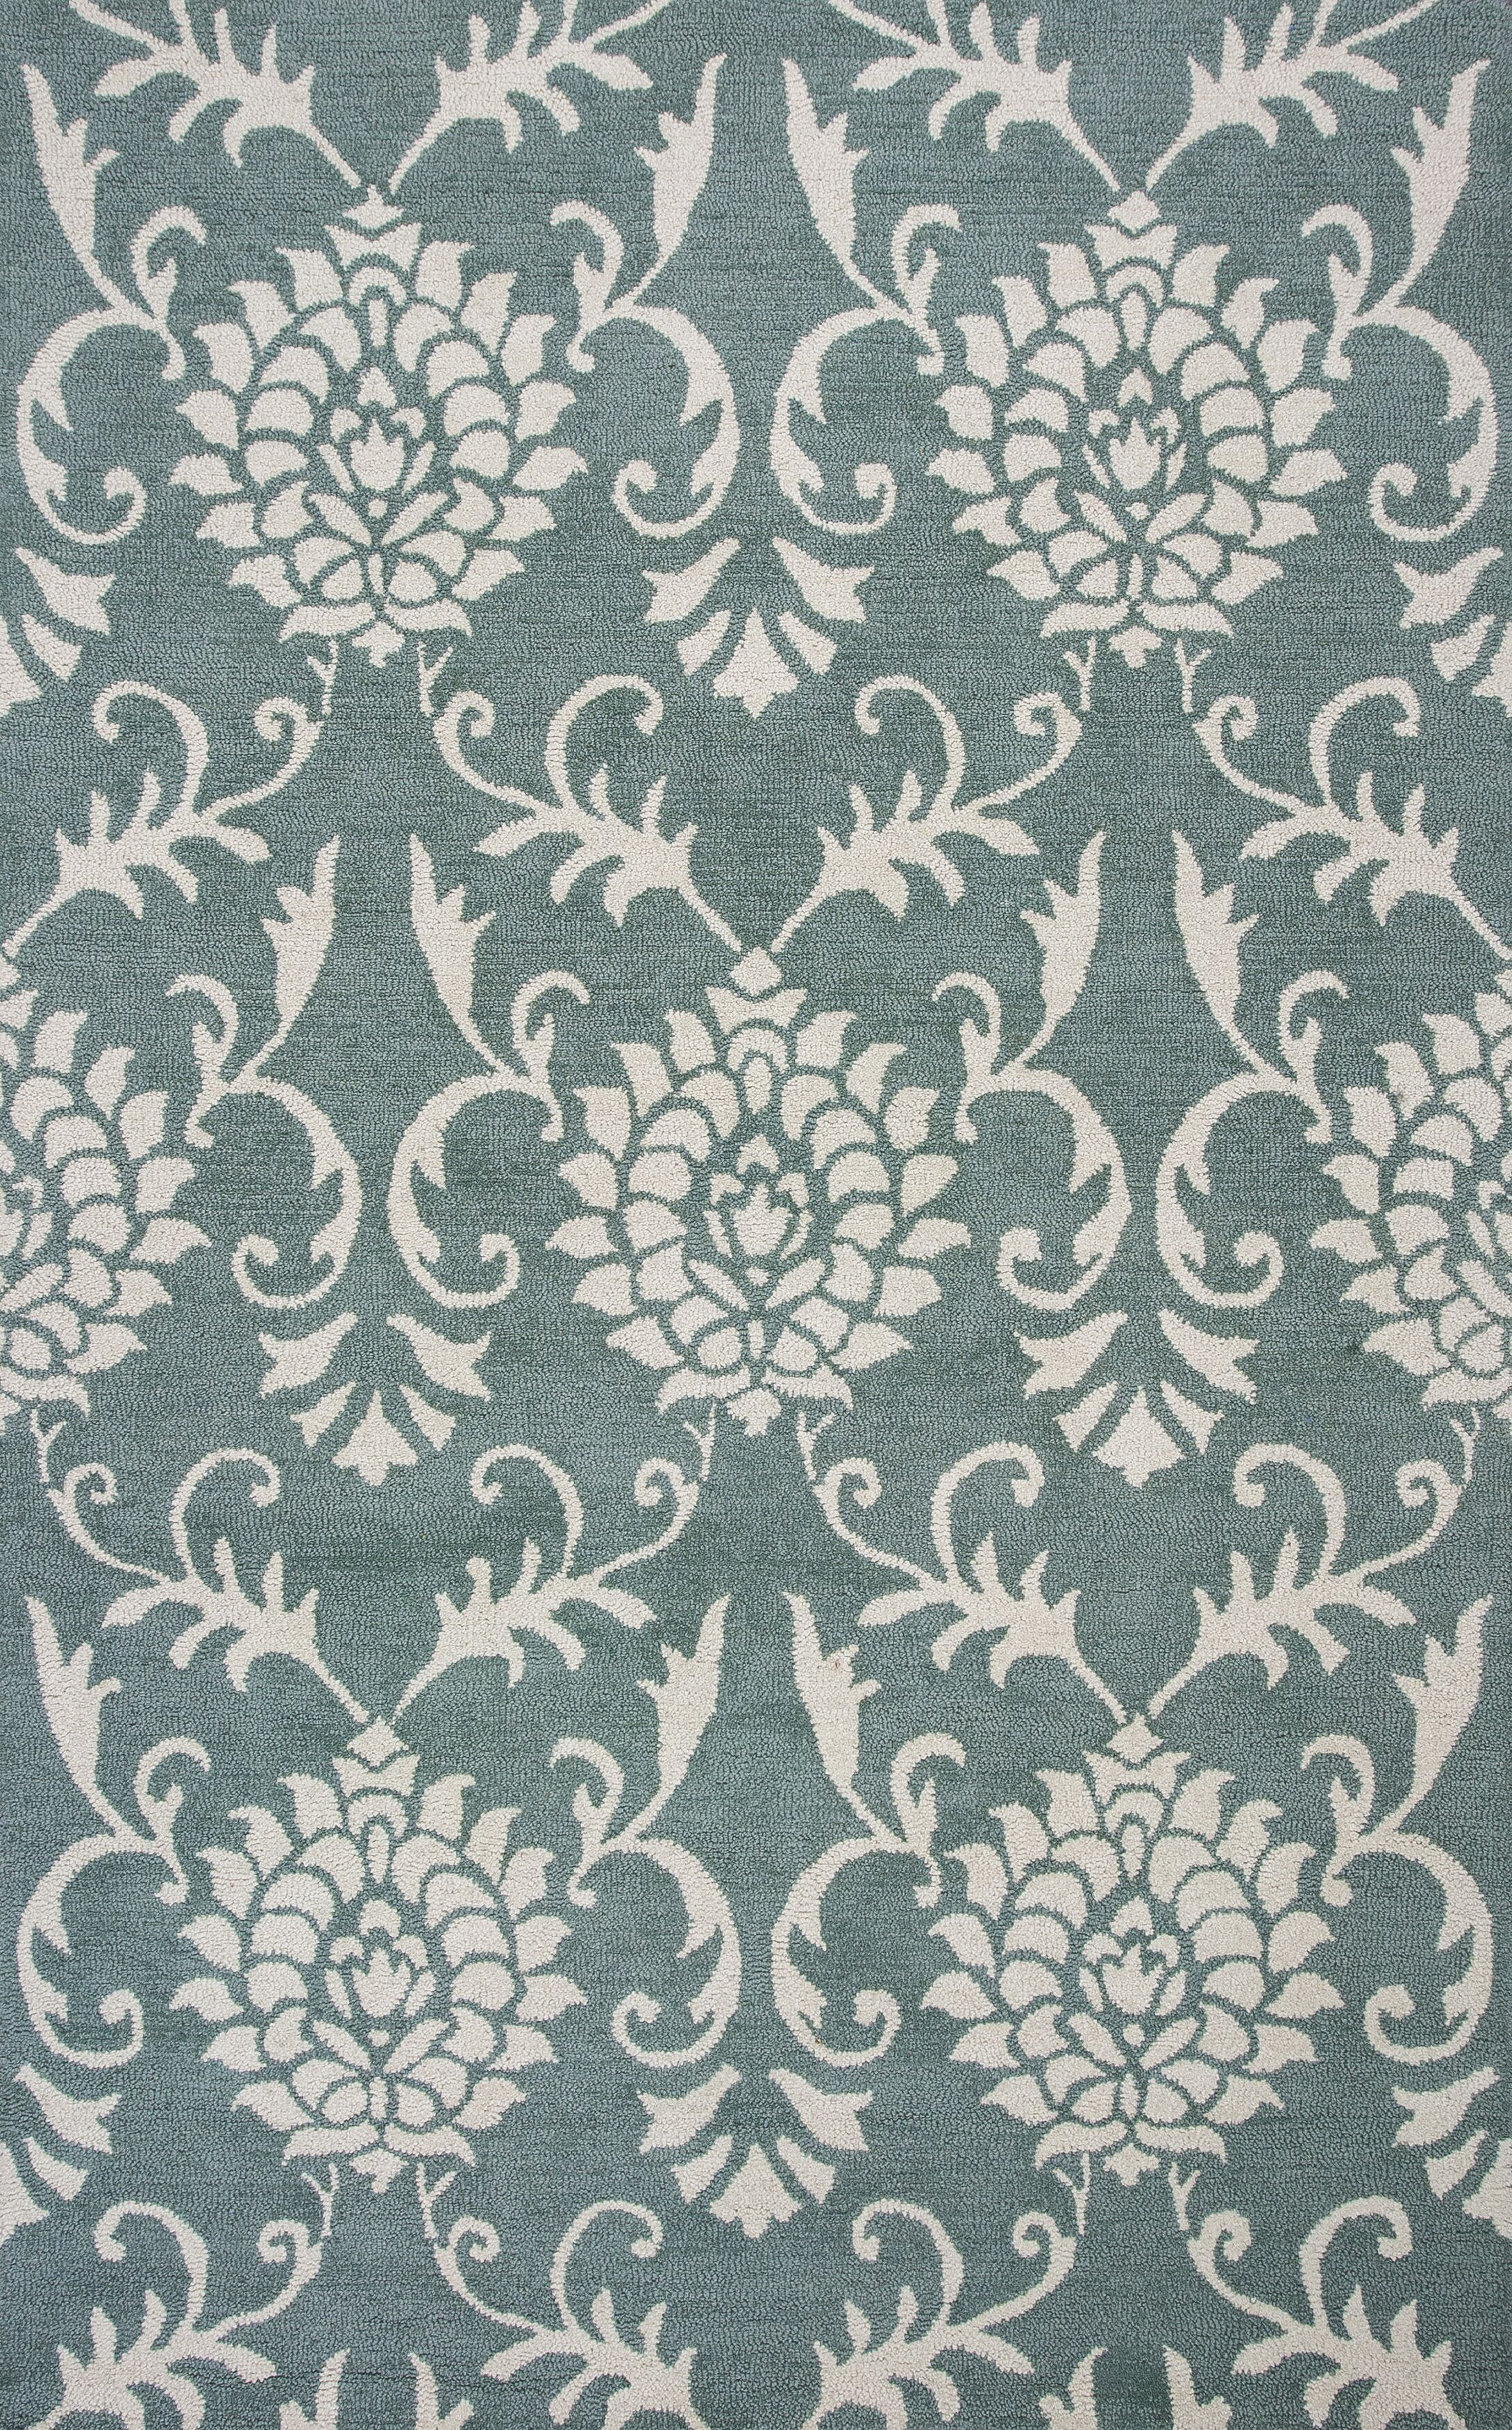 Garrettsville Hand-Hooked Seafoam/Ivory Area Rug Rug Size: Rectangle 5' x 7'